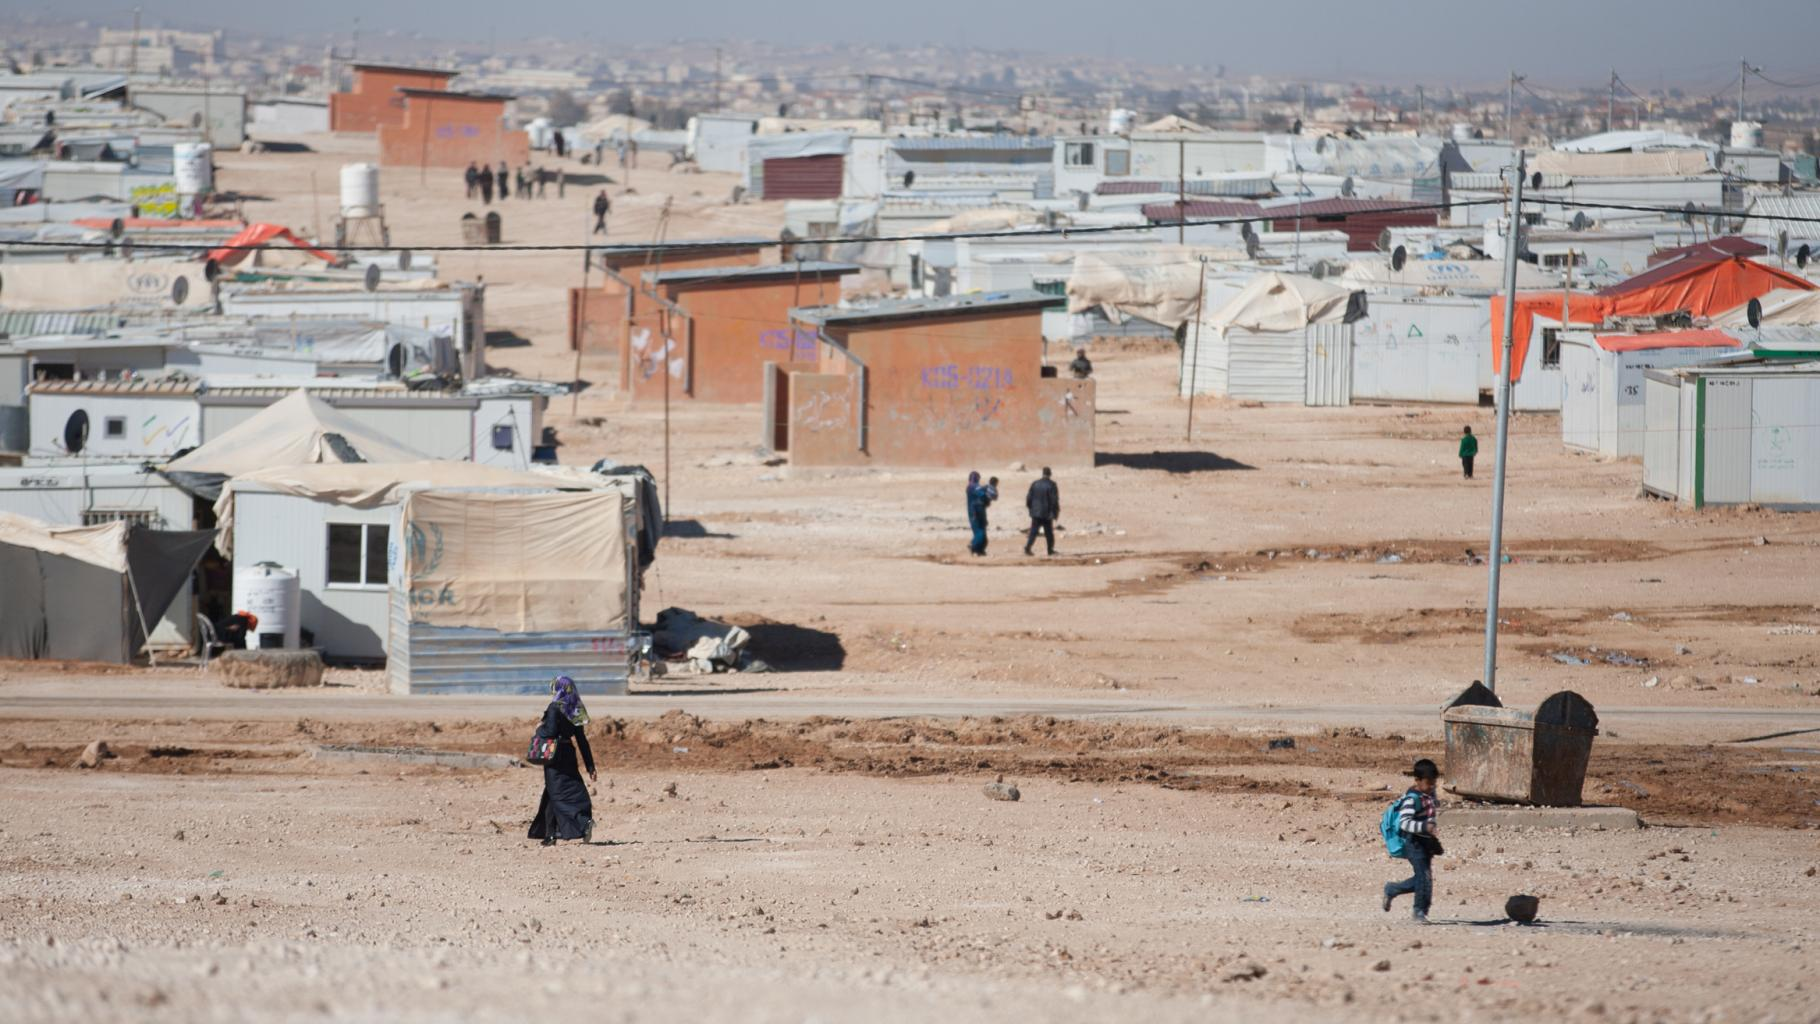 Zataari Refugee Camp in Jordanien